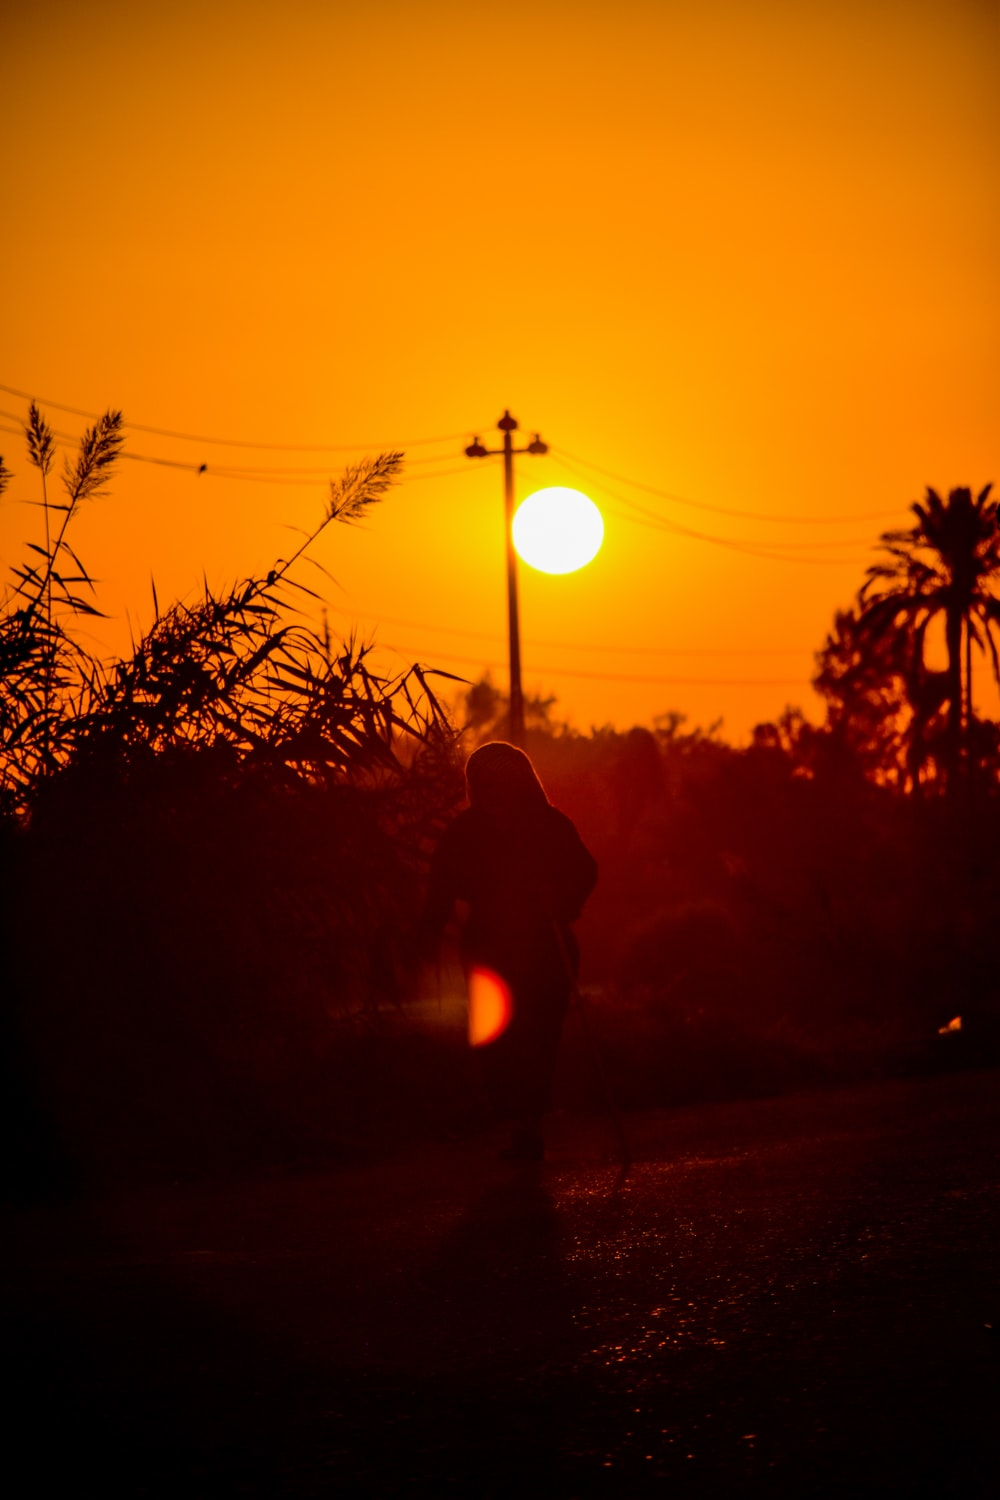 silhouette of person standing near street light during sunset